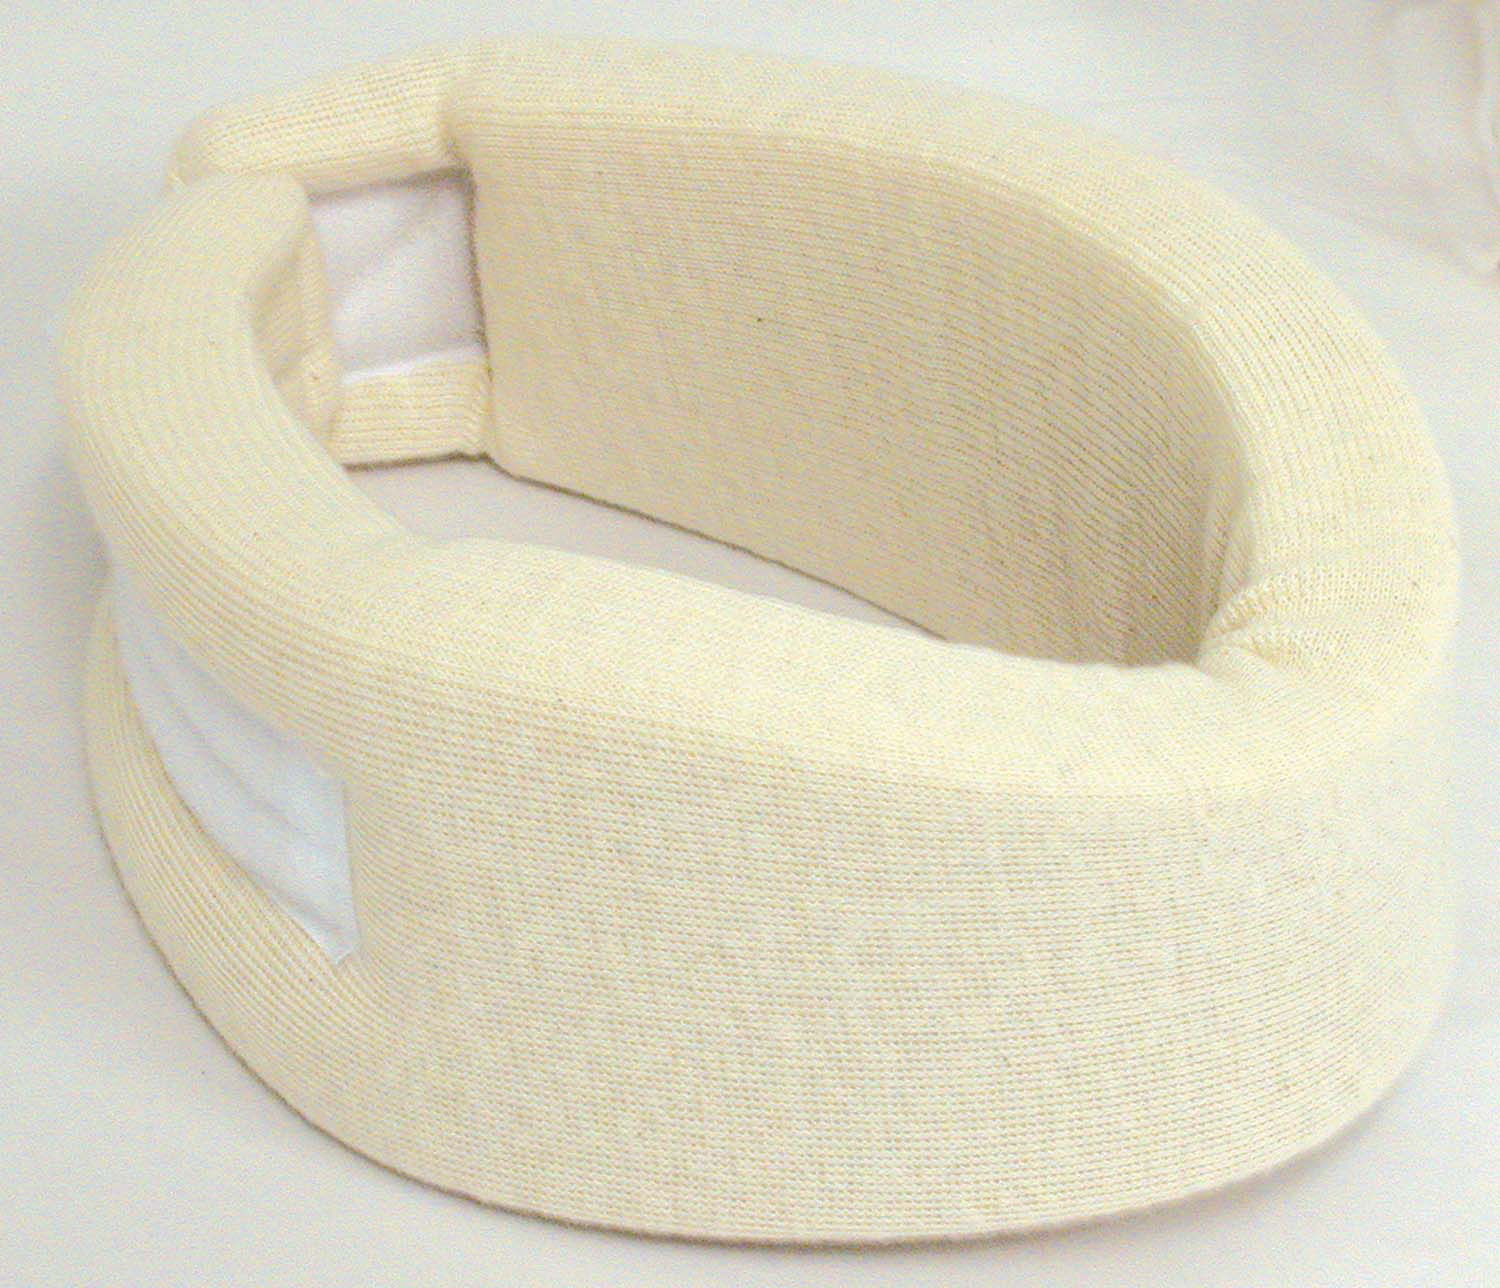 universal-firm-foam-cervical-collar-2-1-2-631-6057-0040-lr.jpg